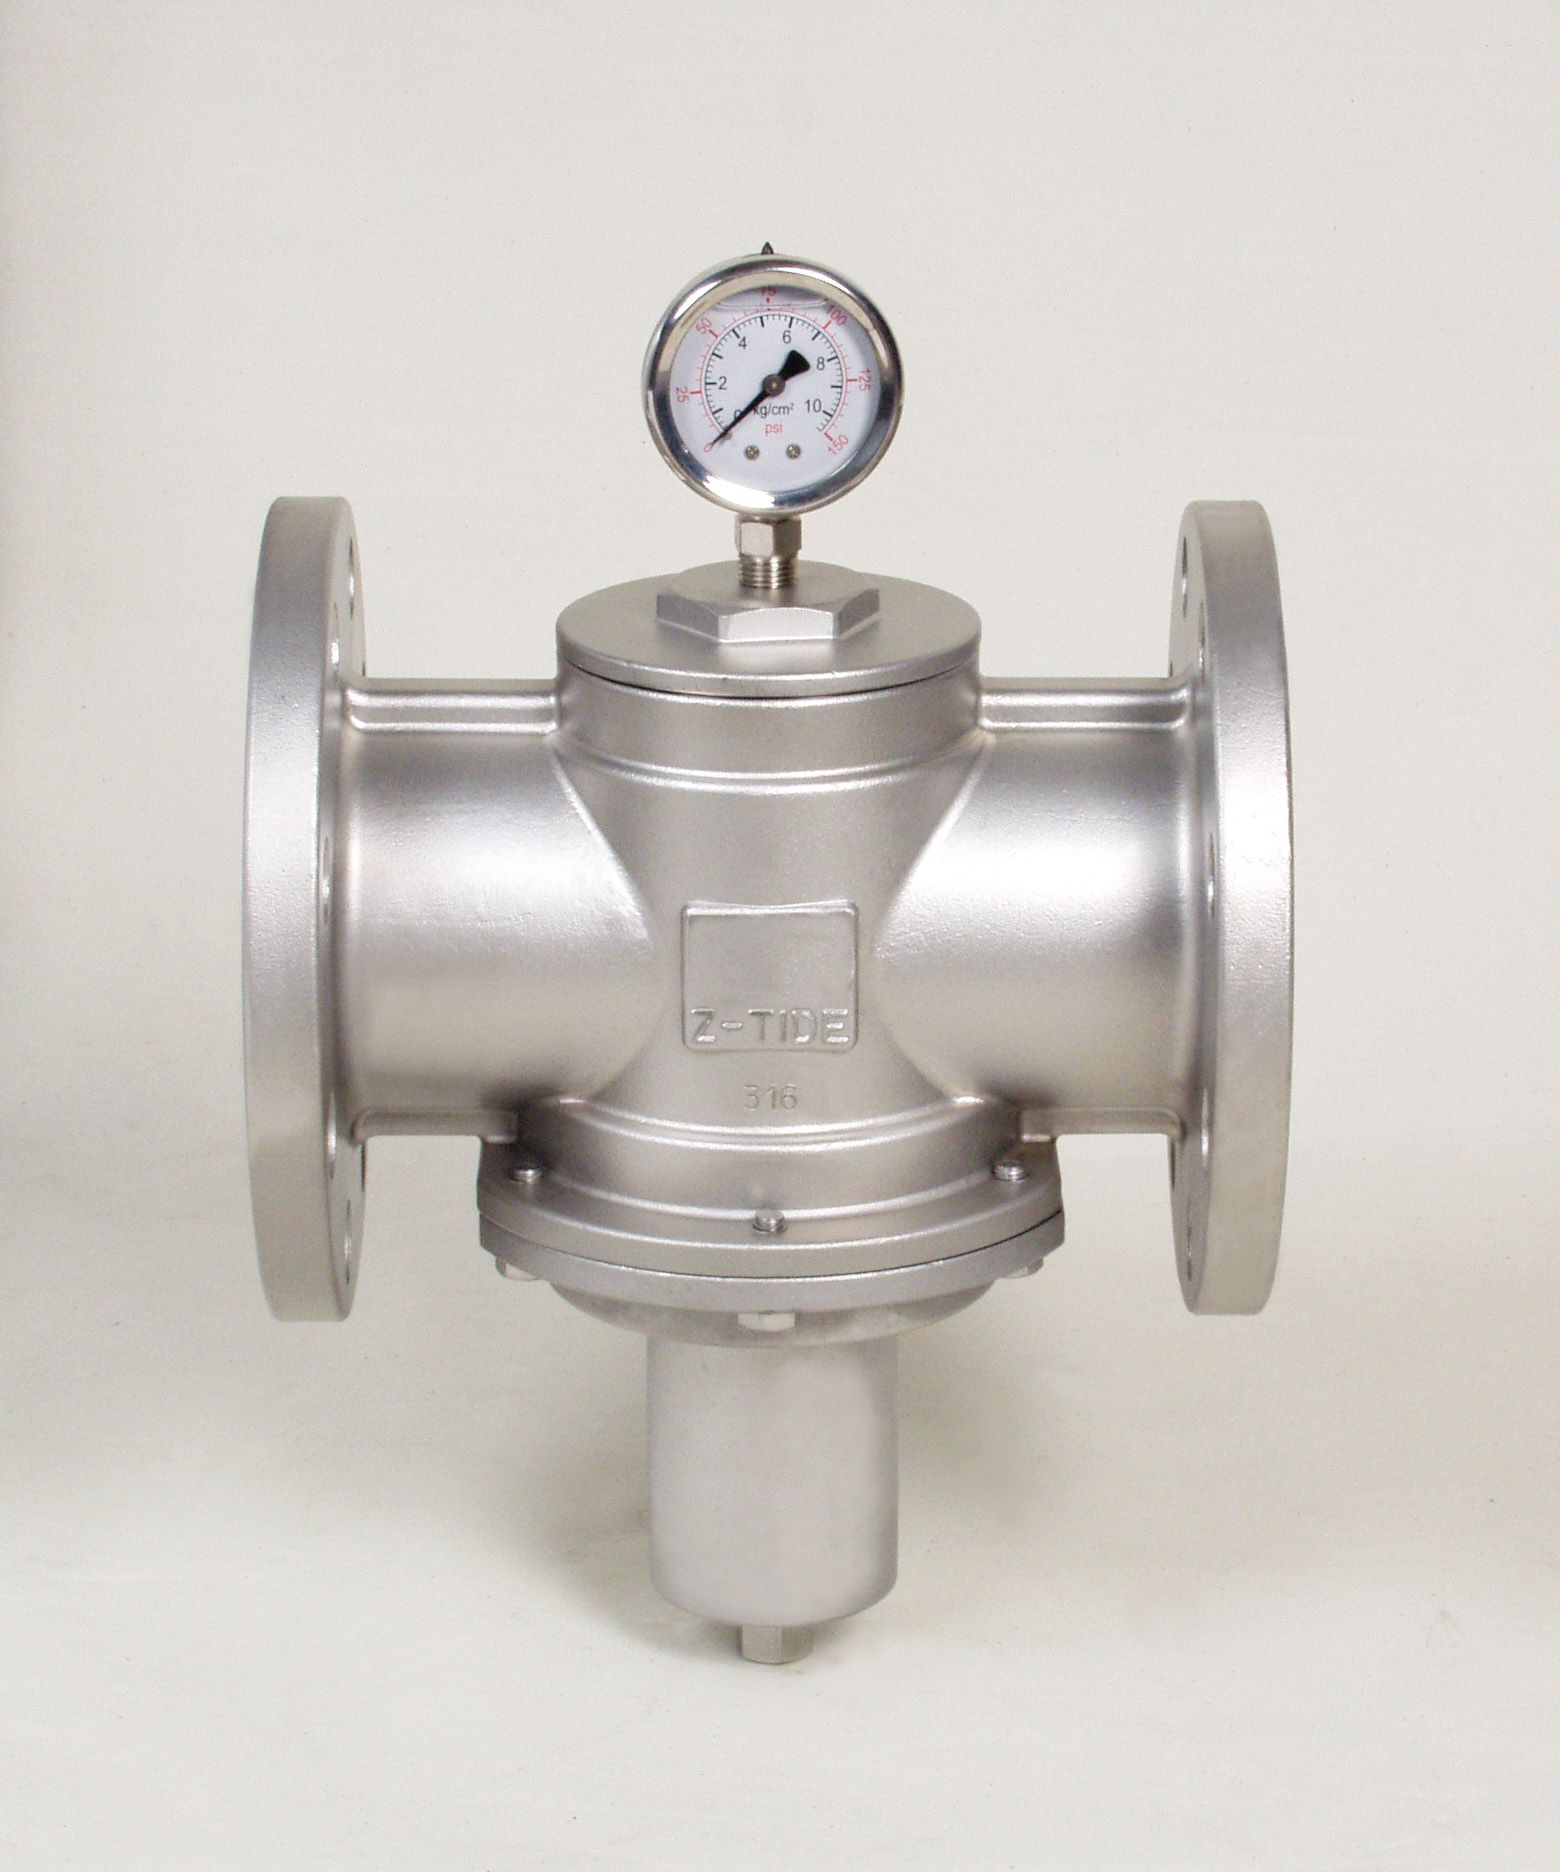 ACS Stainless Steel 316 Direct Acting Pressure Reducing